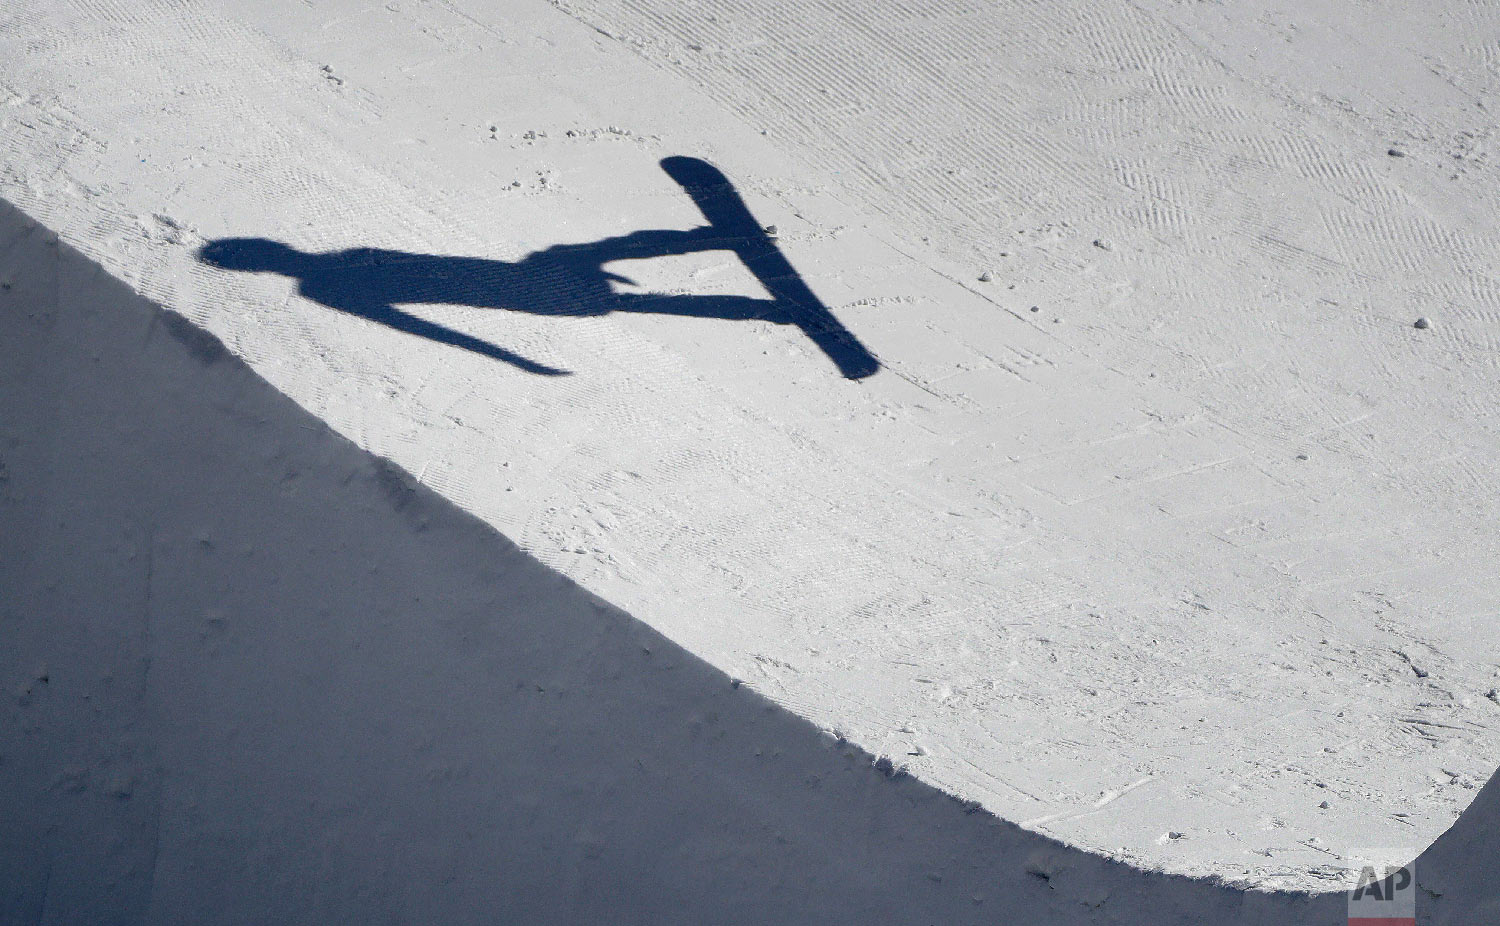 JeromeLymann, of Switzerland, jumps during the men's snowboard cross seeding run at Phoenix Snow Park at the 2018 Winter Olympics in Pyeongchang, South Korea, Thursday, Feb. 15, 2018. (AP Photo/Gregory Bull)